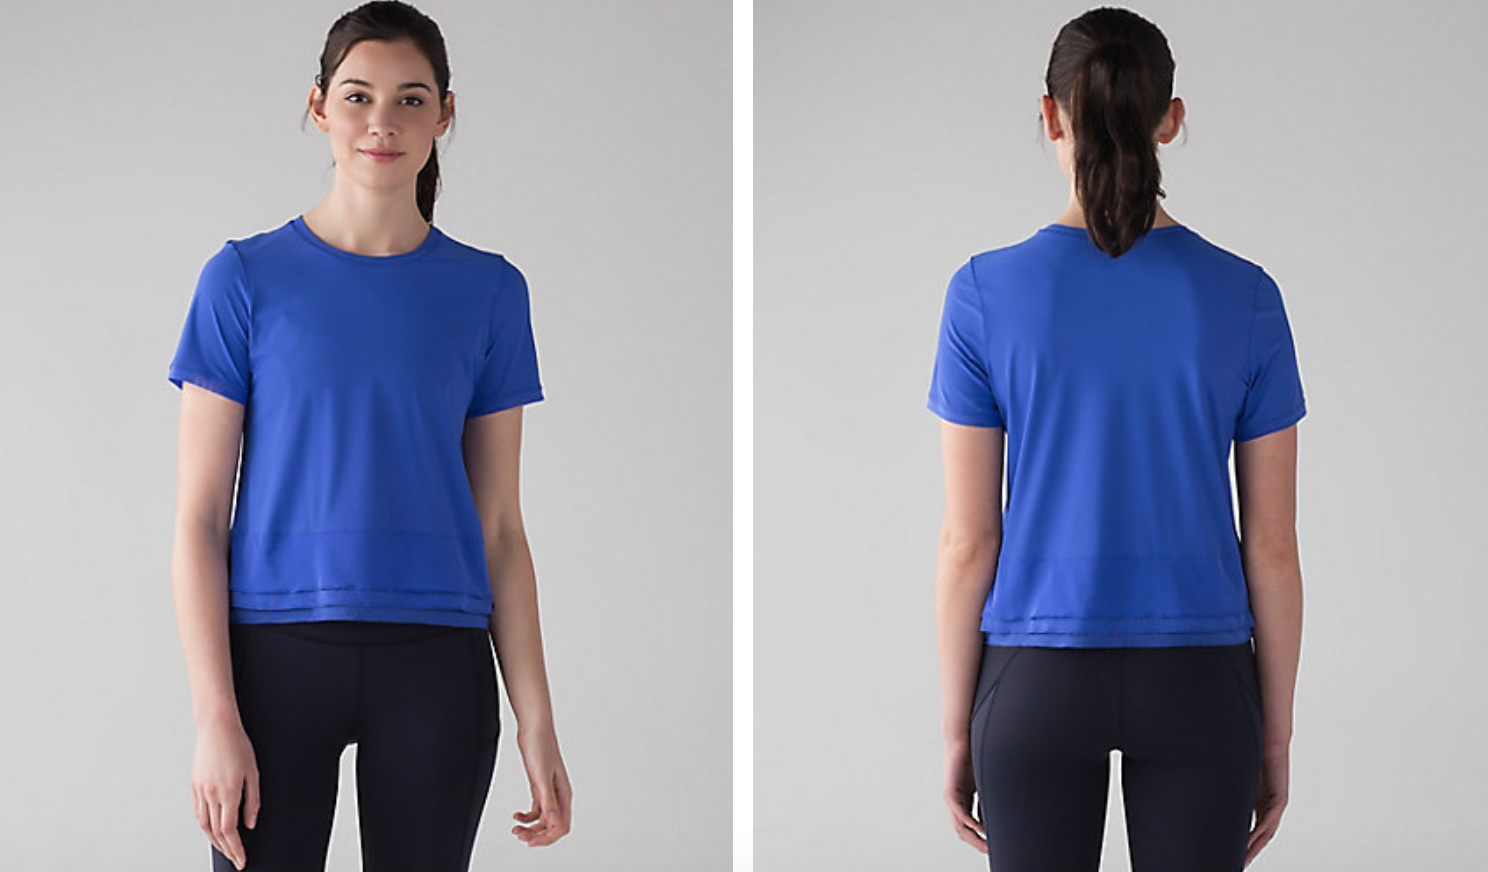 https://api.shopstyle.com/action/apiVisitRetailer?url=https%3A%2F%2Fshop.lululemon.com%2Fp%2Ftops-short-sleeve%2FSole-Training-Ss%2F_%2Fprod8490101%3Frcnt%3D46%26N%3D1z13ziiZ7vf%26cnt%3D76%26color%3DLW3ABGS_028862&site=www.shopstyle.ca&pid=uid6784-25288972-7